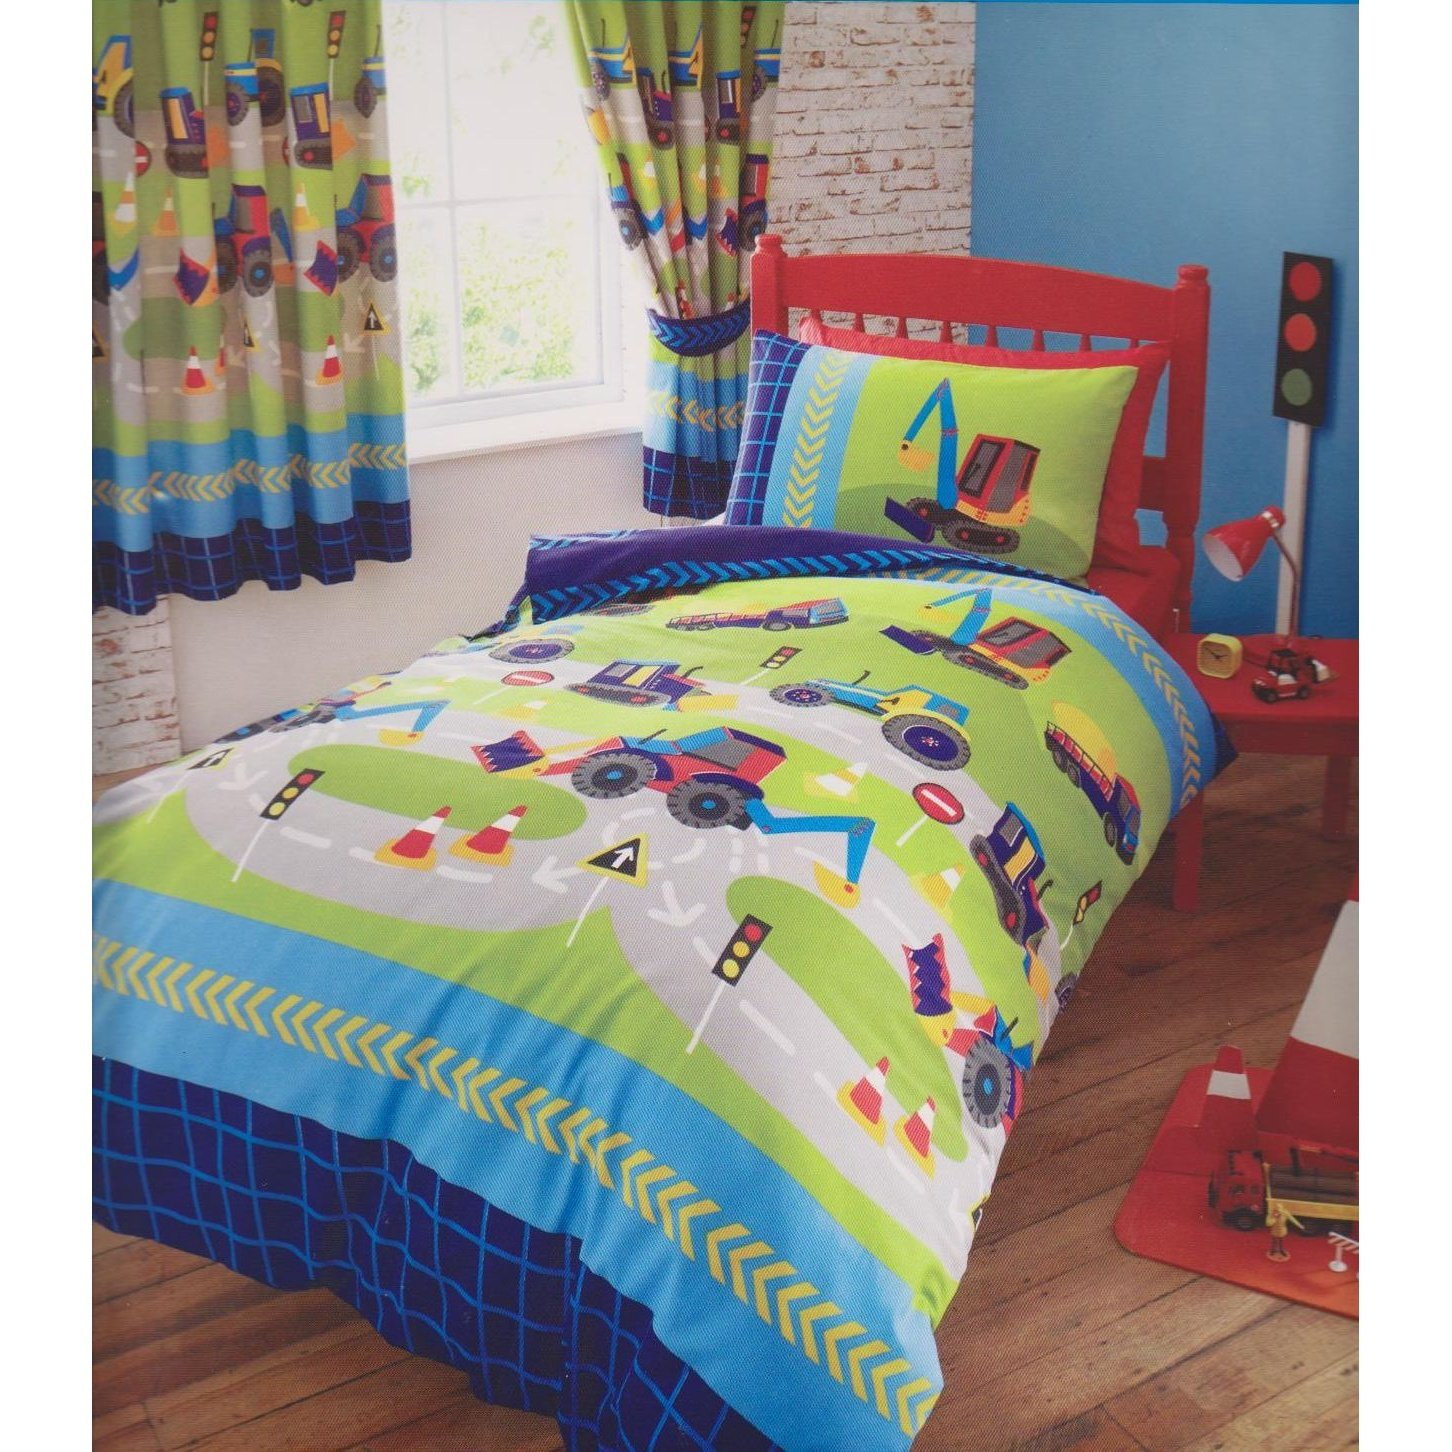 Kids Club Boys Diggers Trucks Duvet/Quilt Cover Set, Navy Blue/Green, Double Bedmaker 12395251